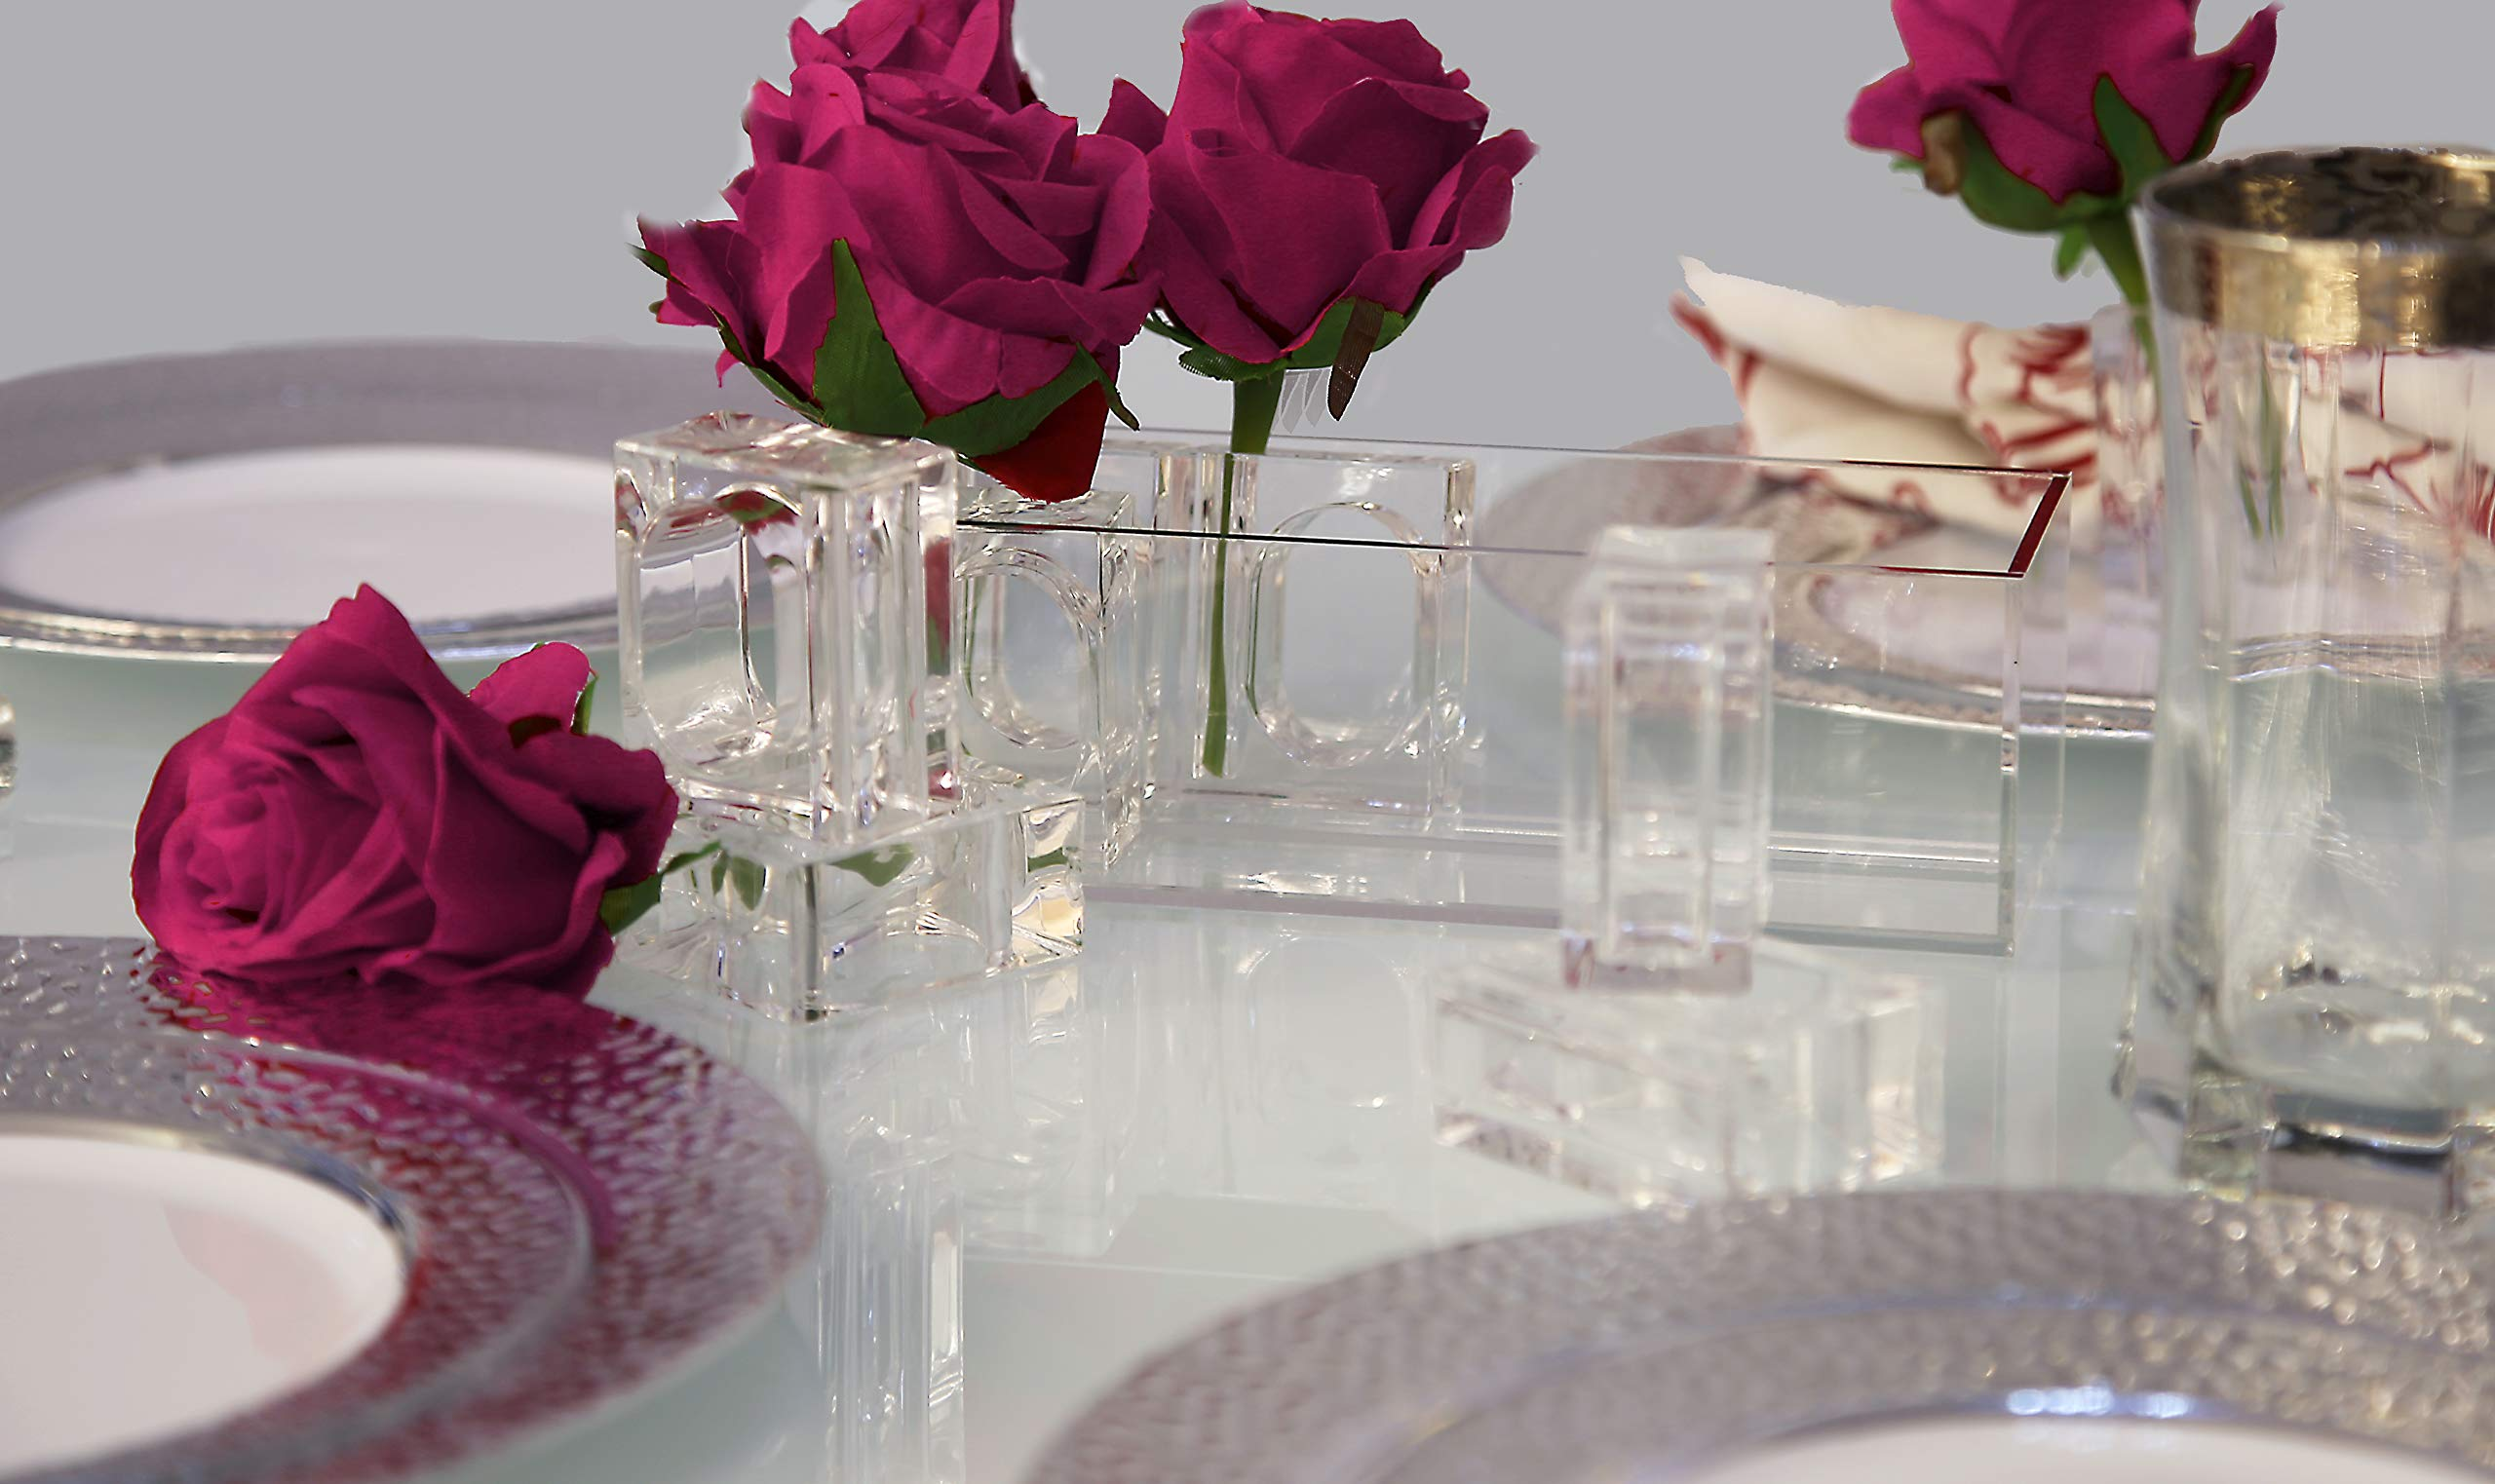 Deco-Mate Acrylic Napkin Rings Bud Vase Flower Holder - Clear - Table Décor, 2-in 1 (Bulk Set) Wholesale (24) by Deco-Mate